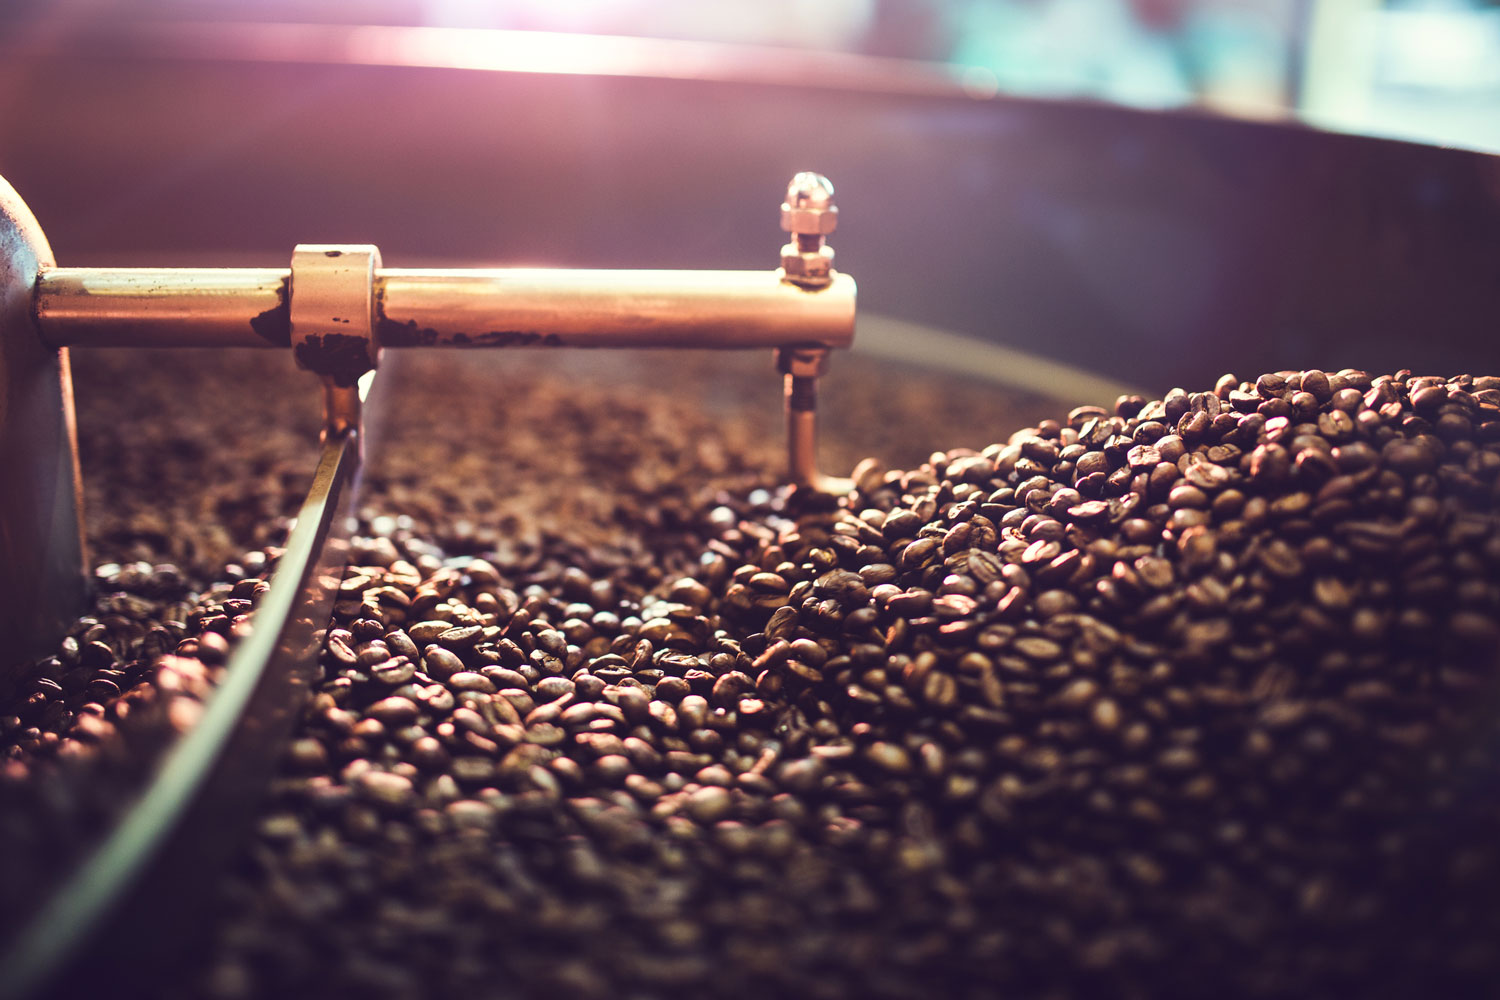 A close up shot of coffee beans being roasted in a coffee roasting machine.